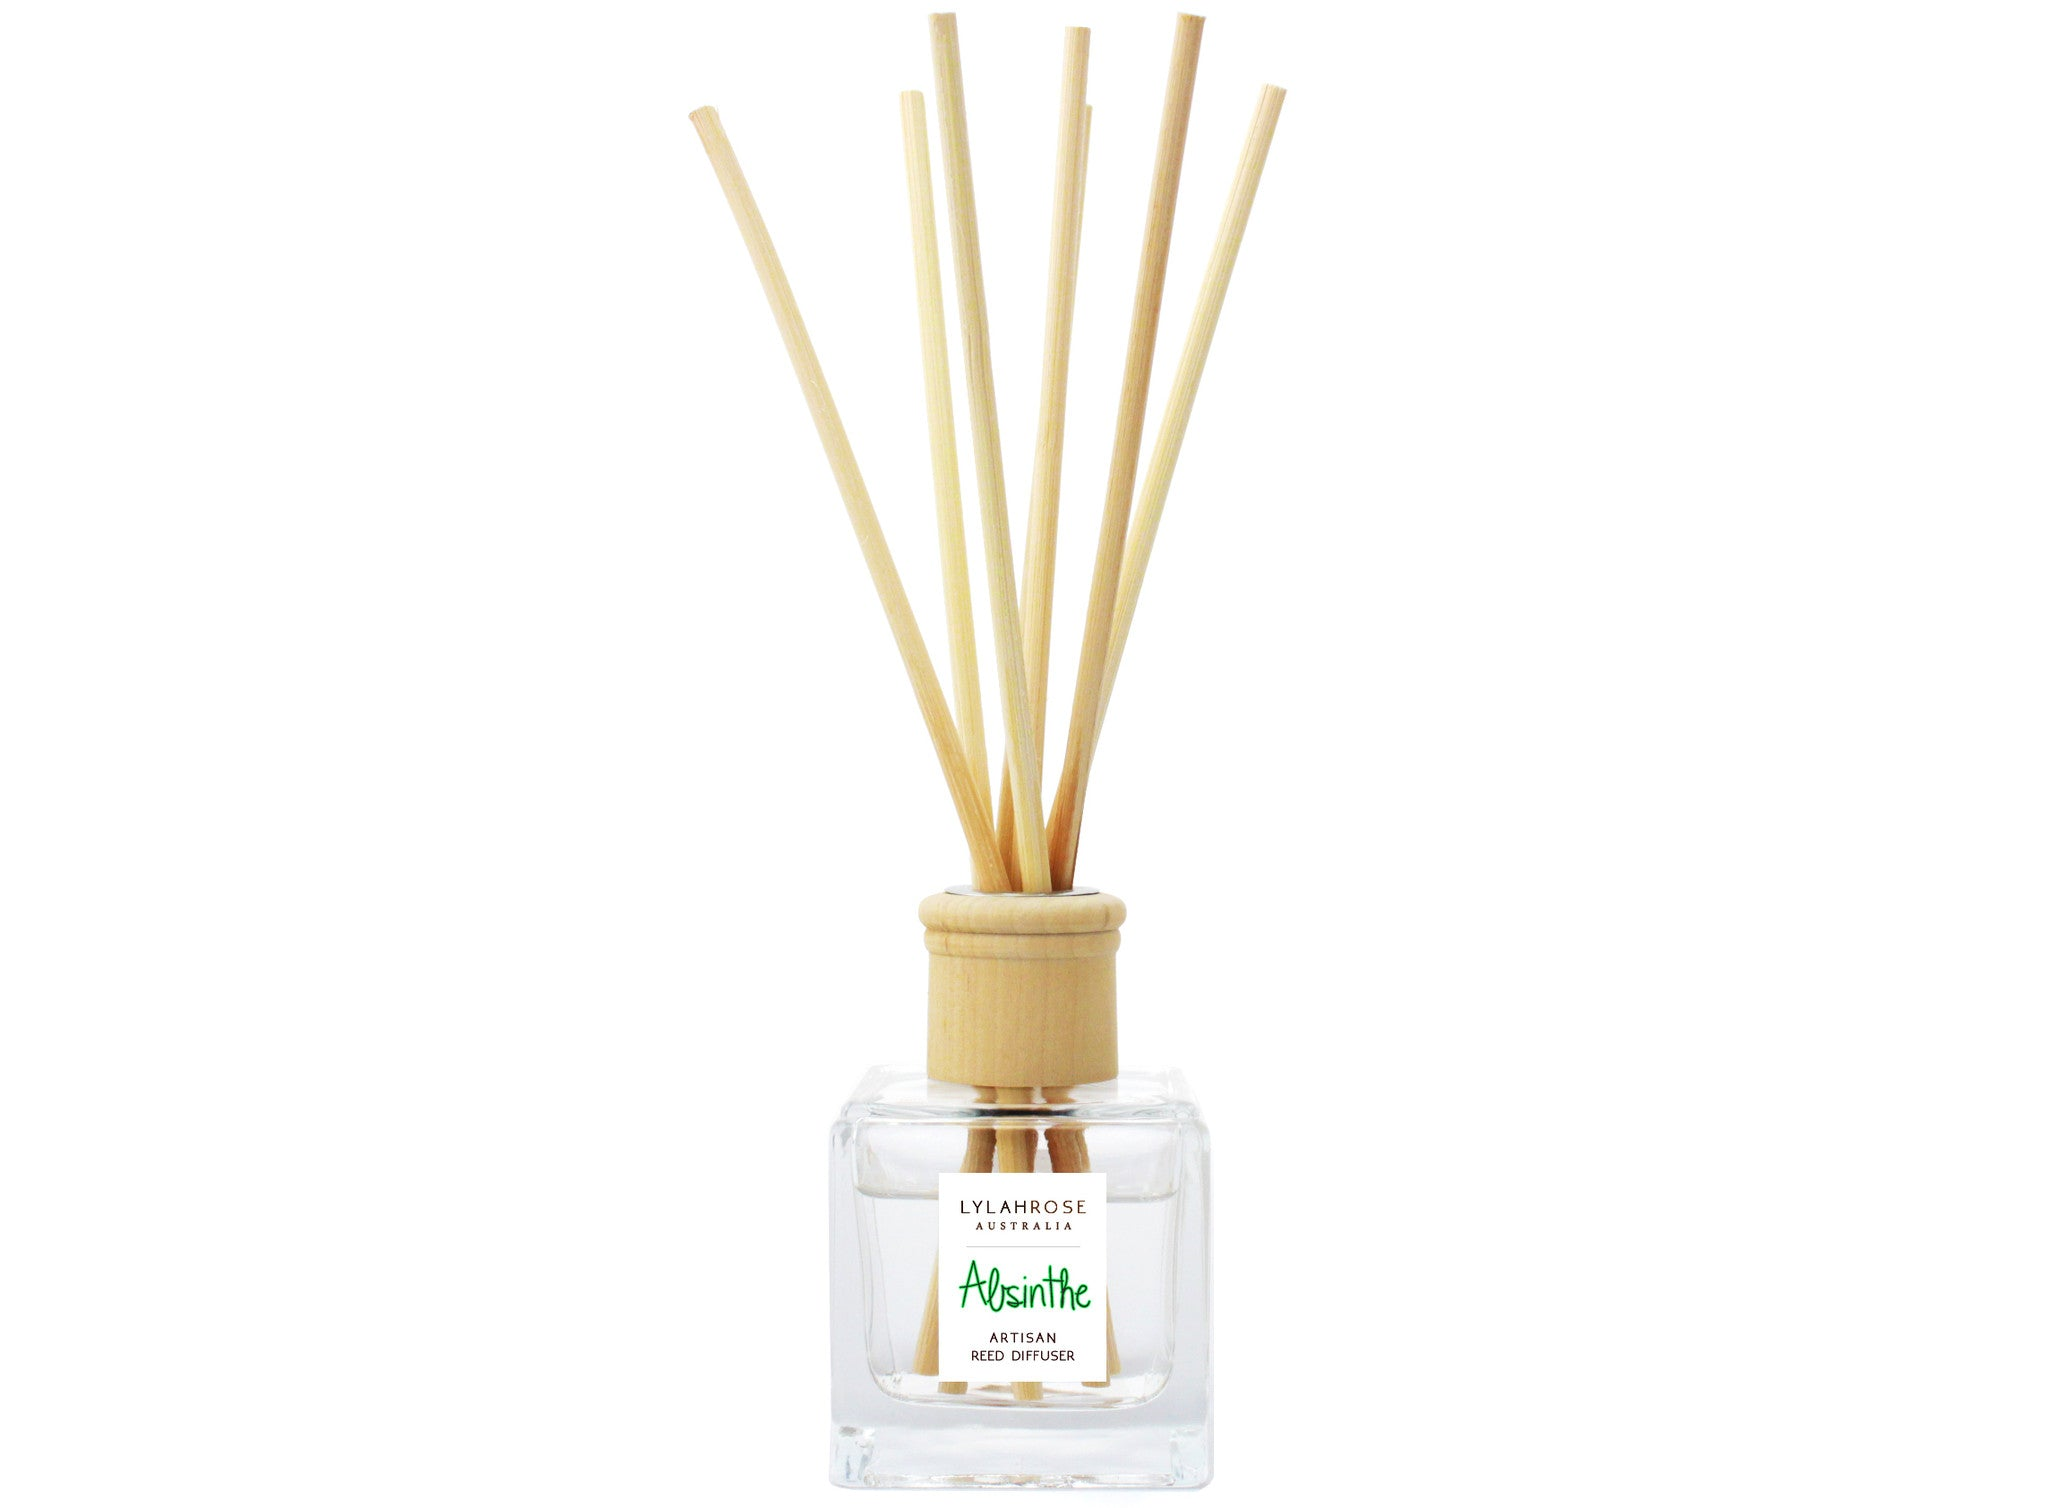 absinthe-140ml-reed-diffuser